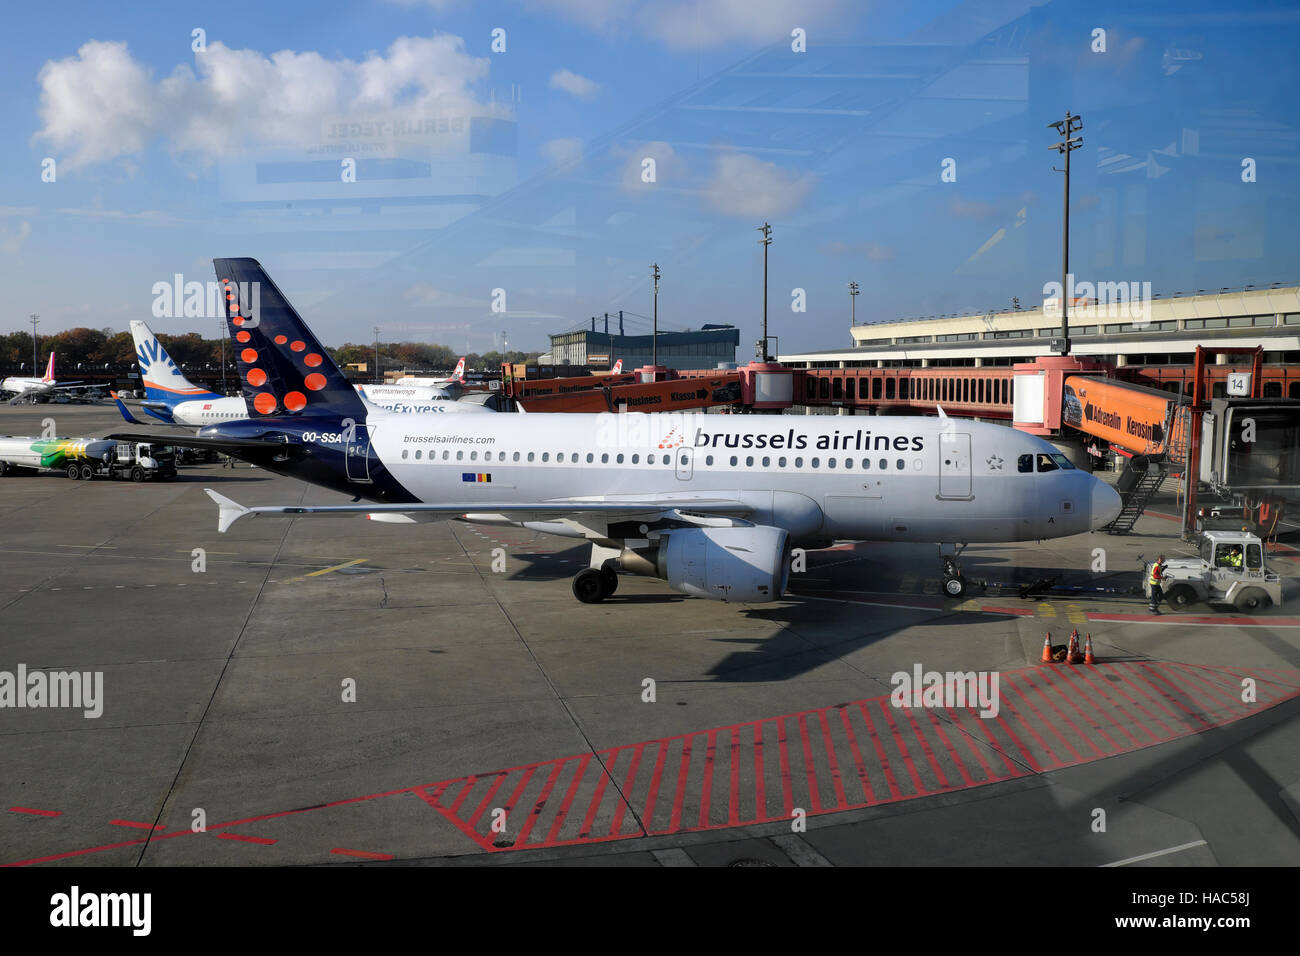 Brussels airlines plane on the tarmac at Tegel Airport in Berlin, Germany, Europe EU  KATHY DEWITT - Stock Image